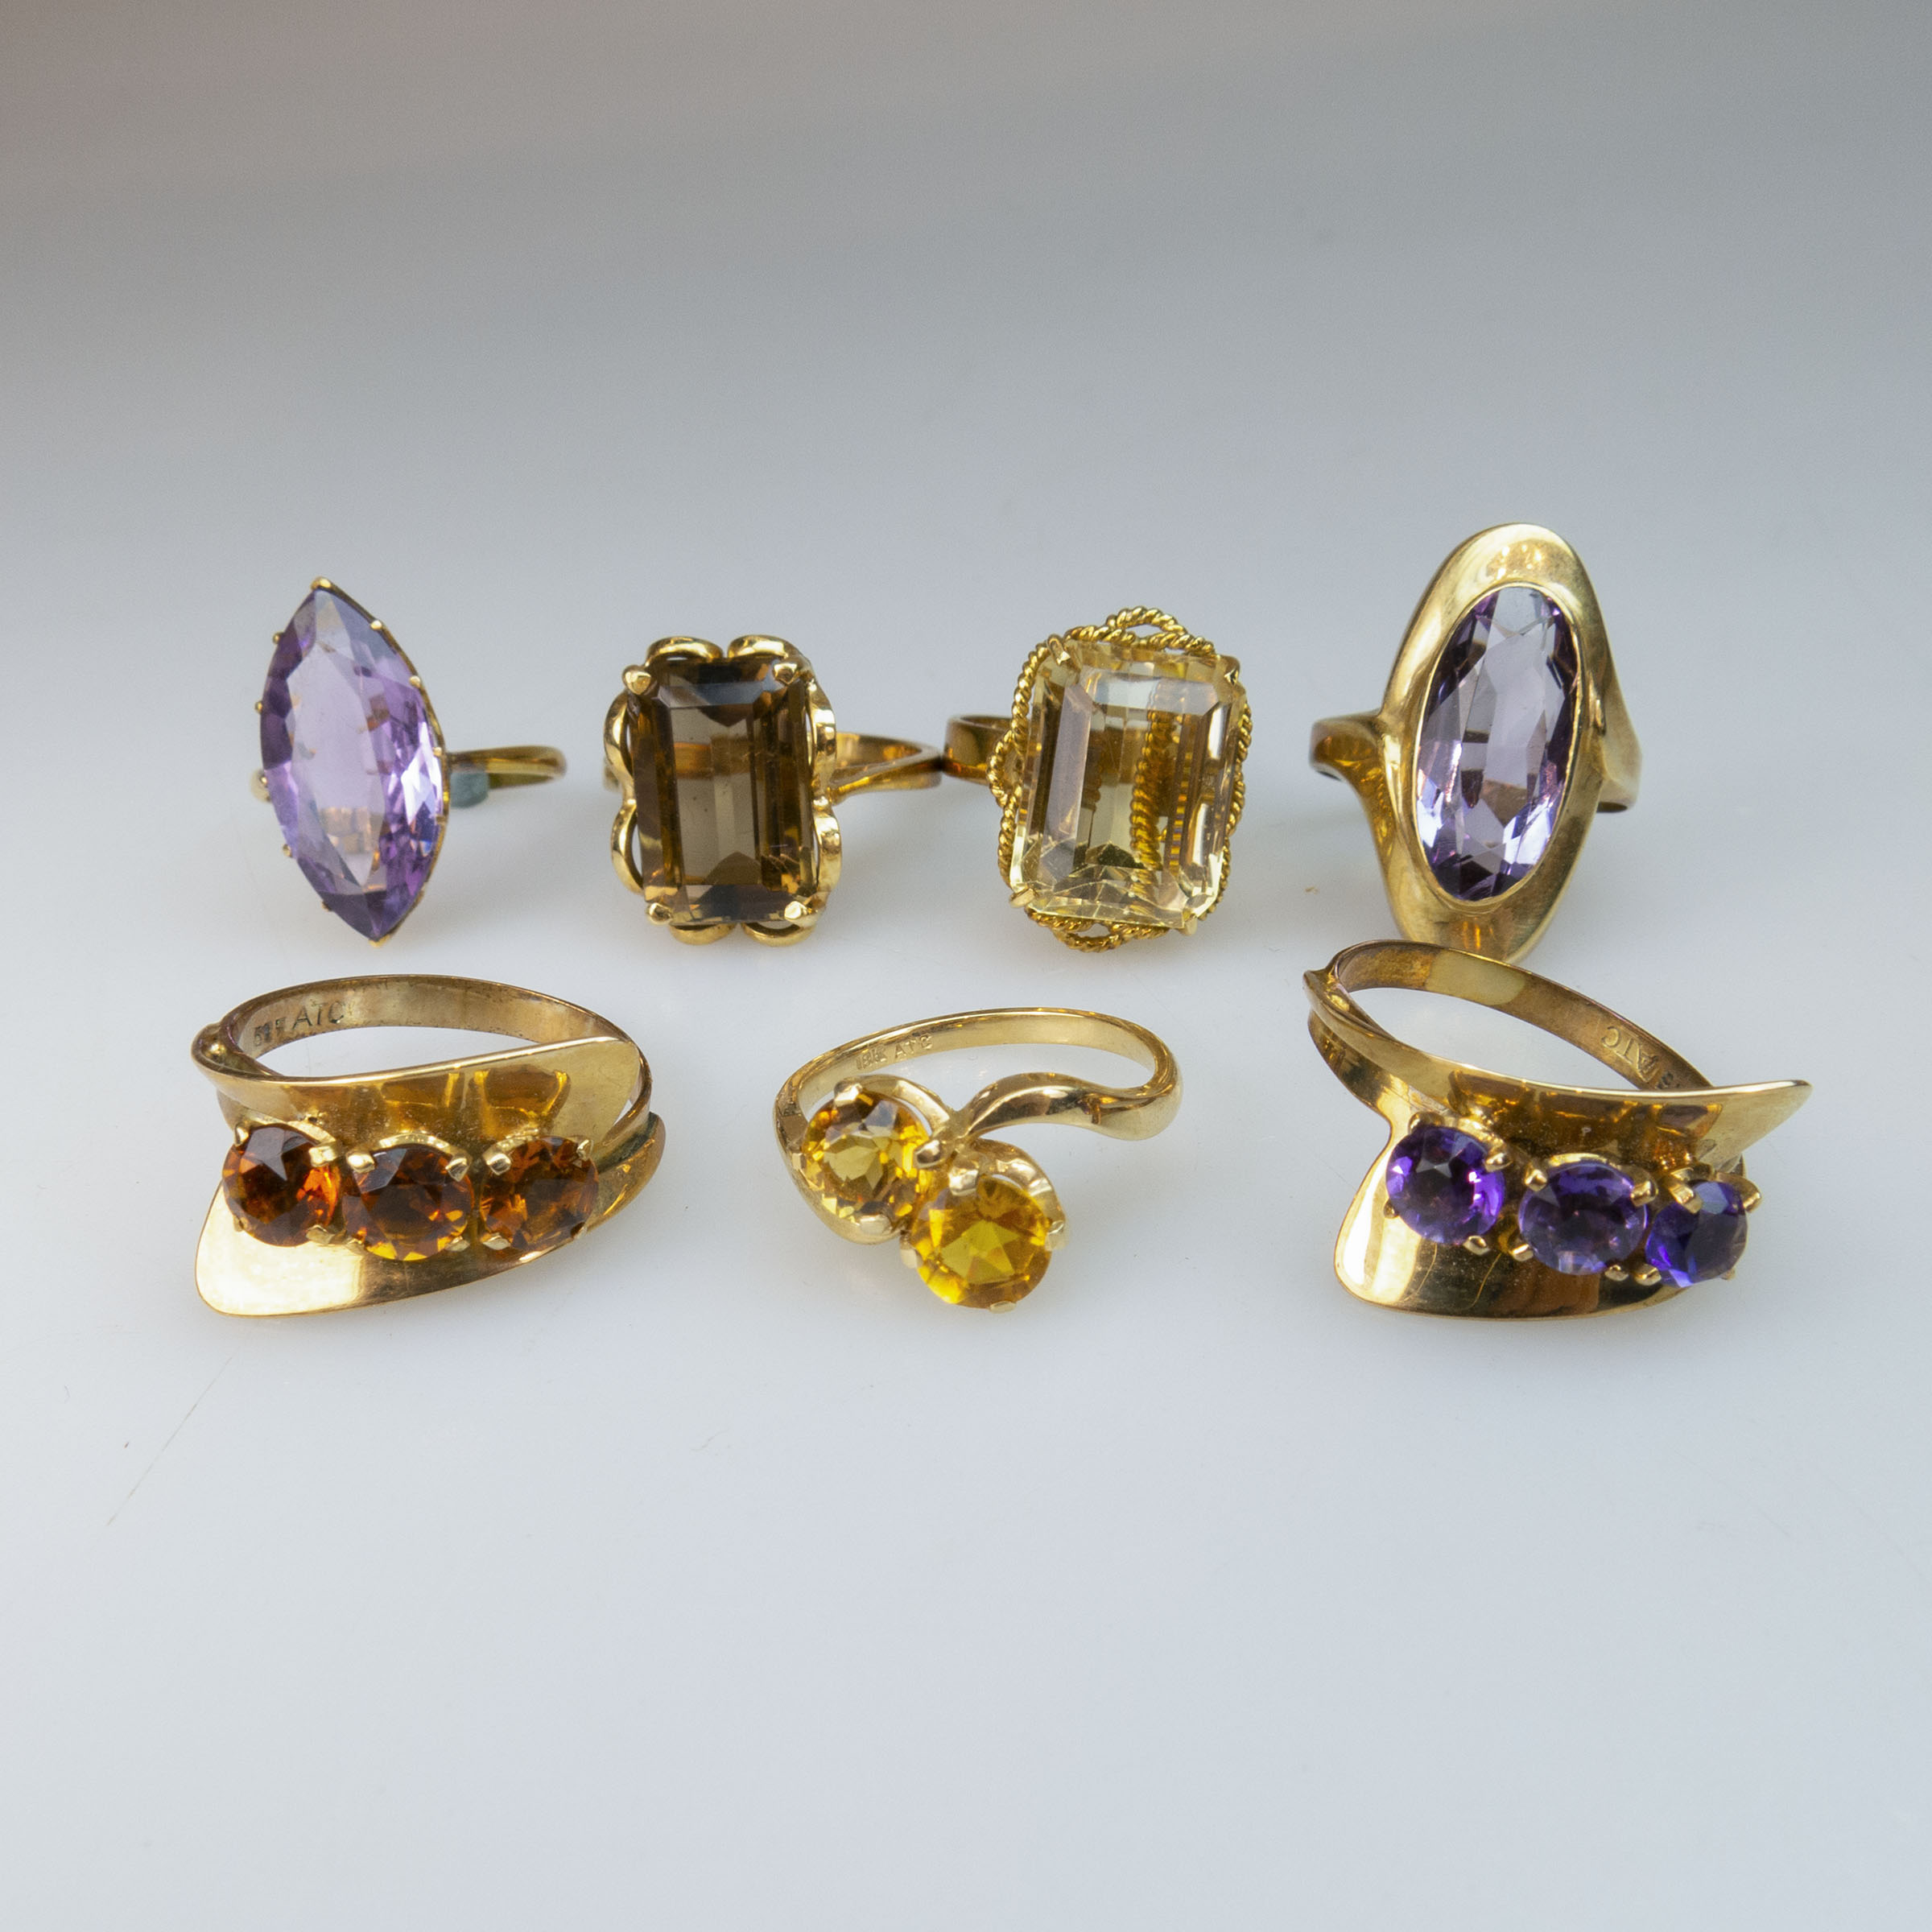 4 x 14k And 3 x 18k Yellow Gold Rings